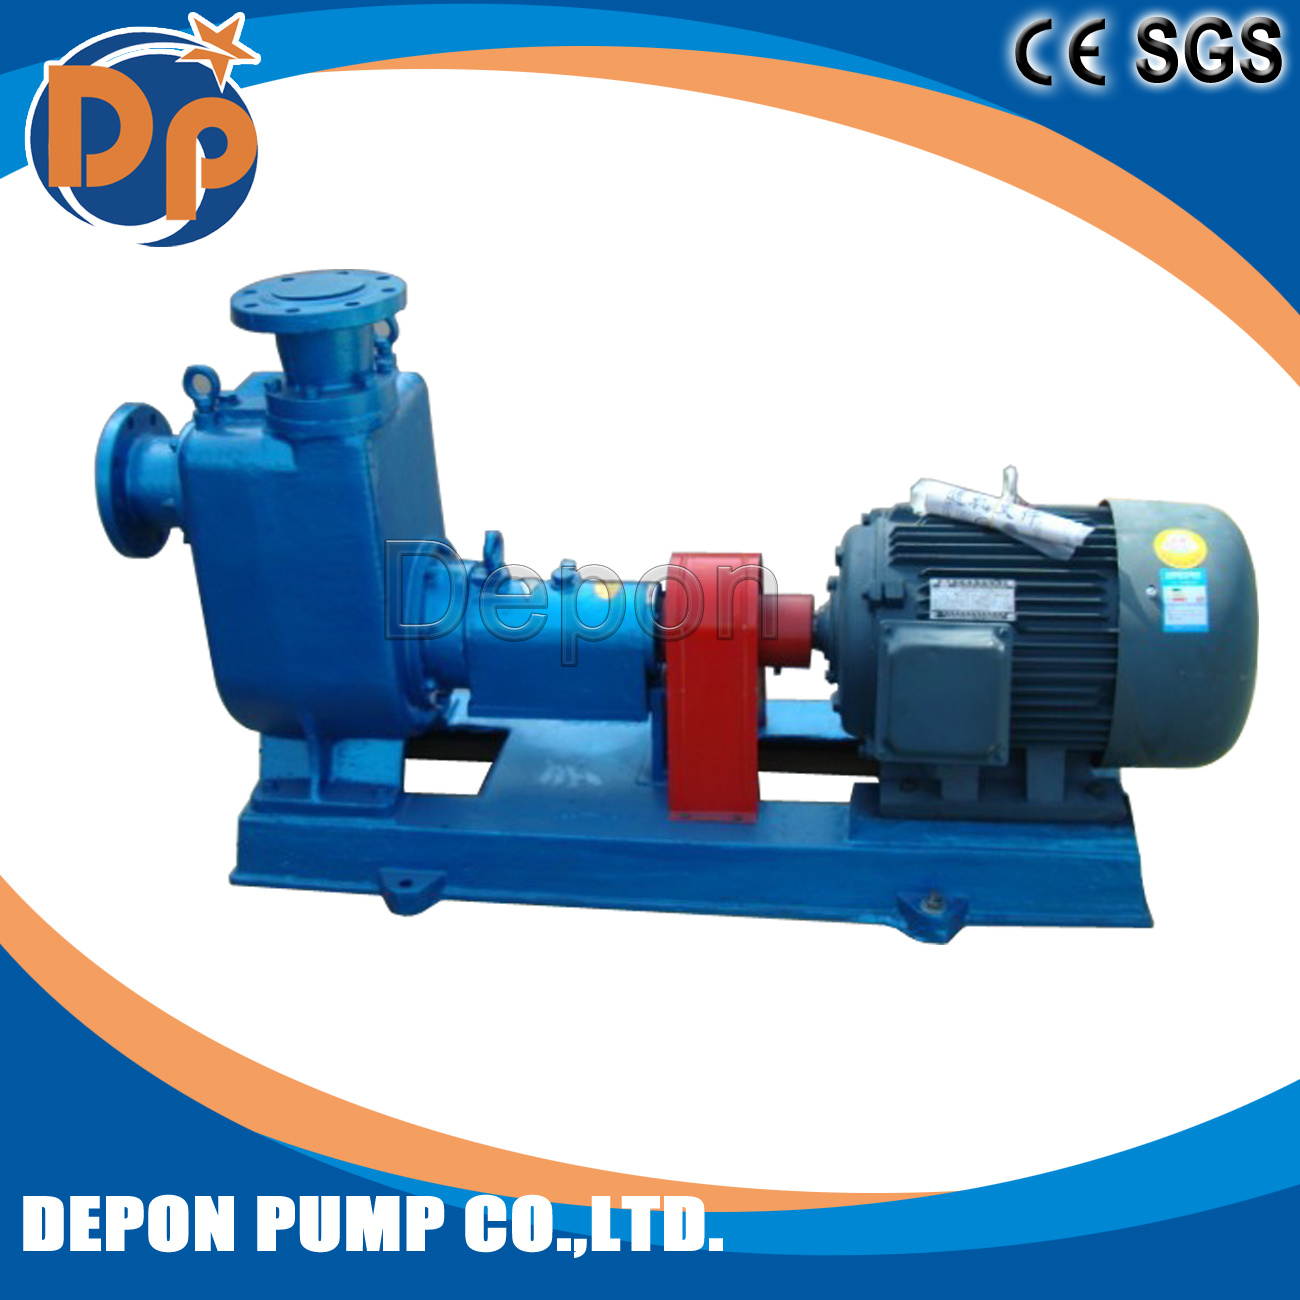 6 Inch Self Priming Non-Clogging Sewage Pump Trash Pump